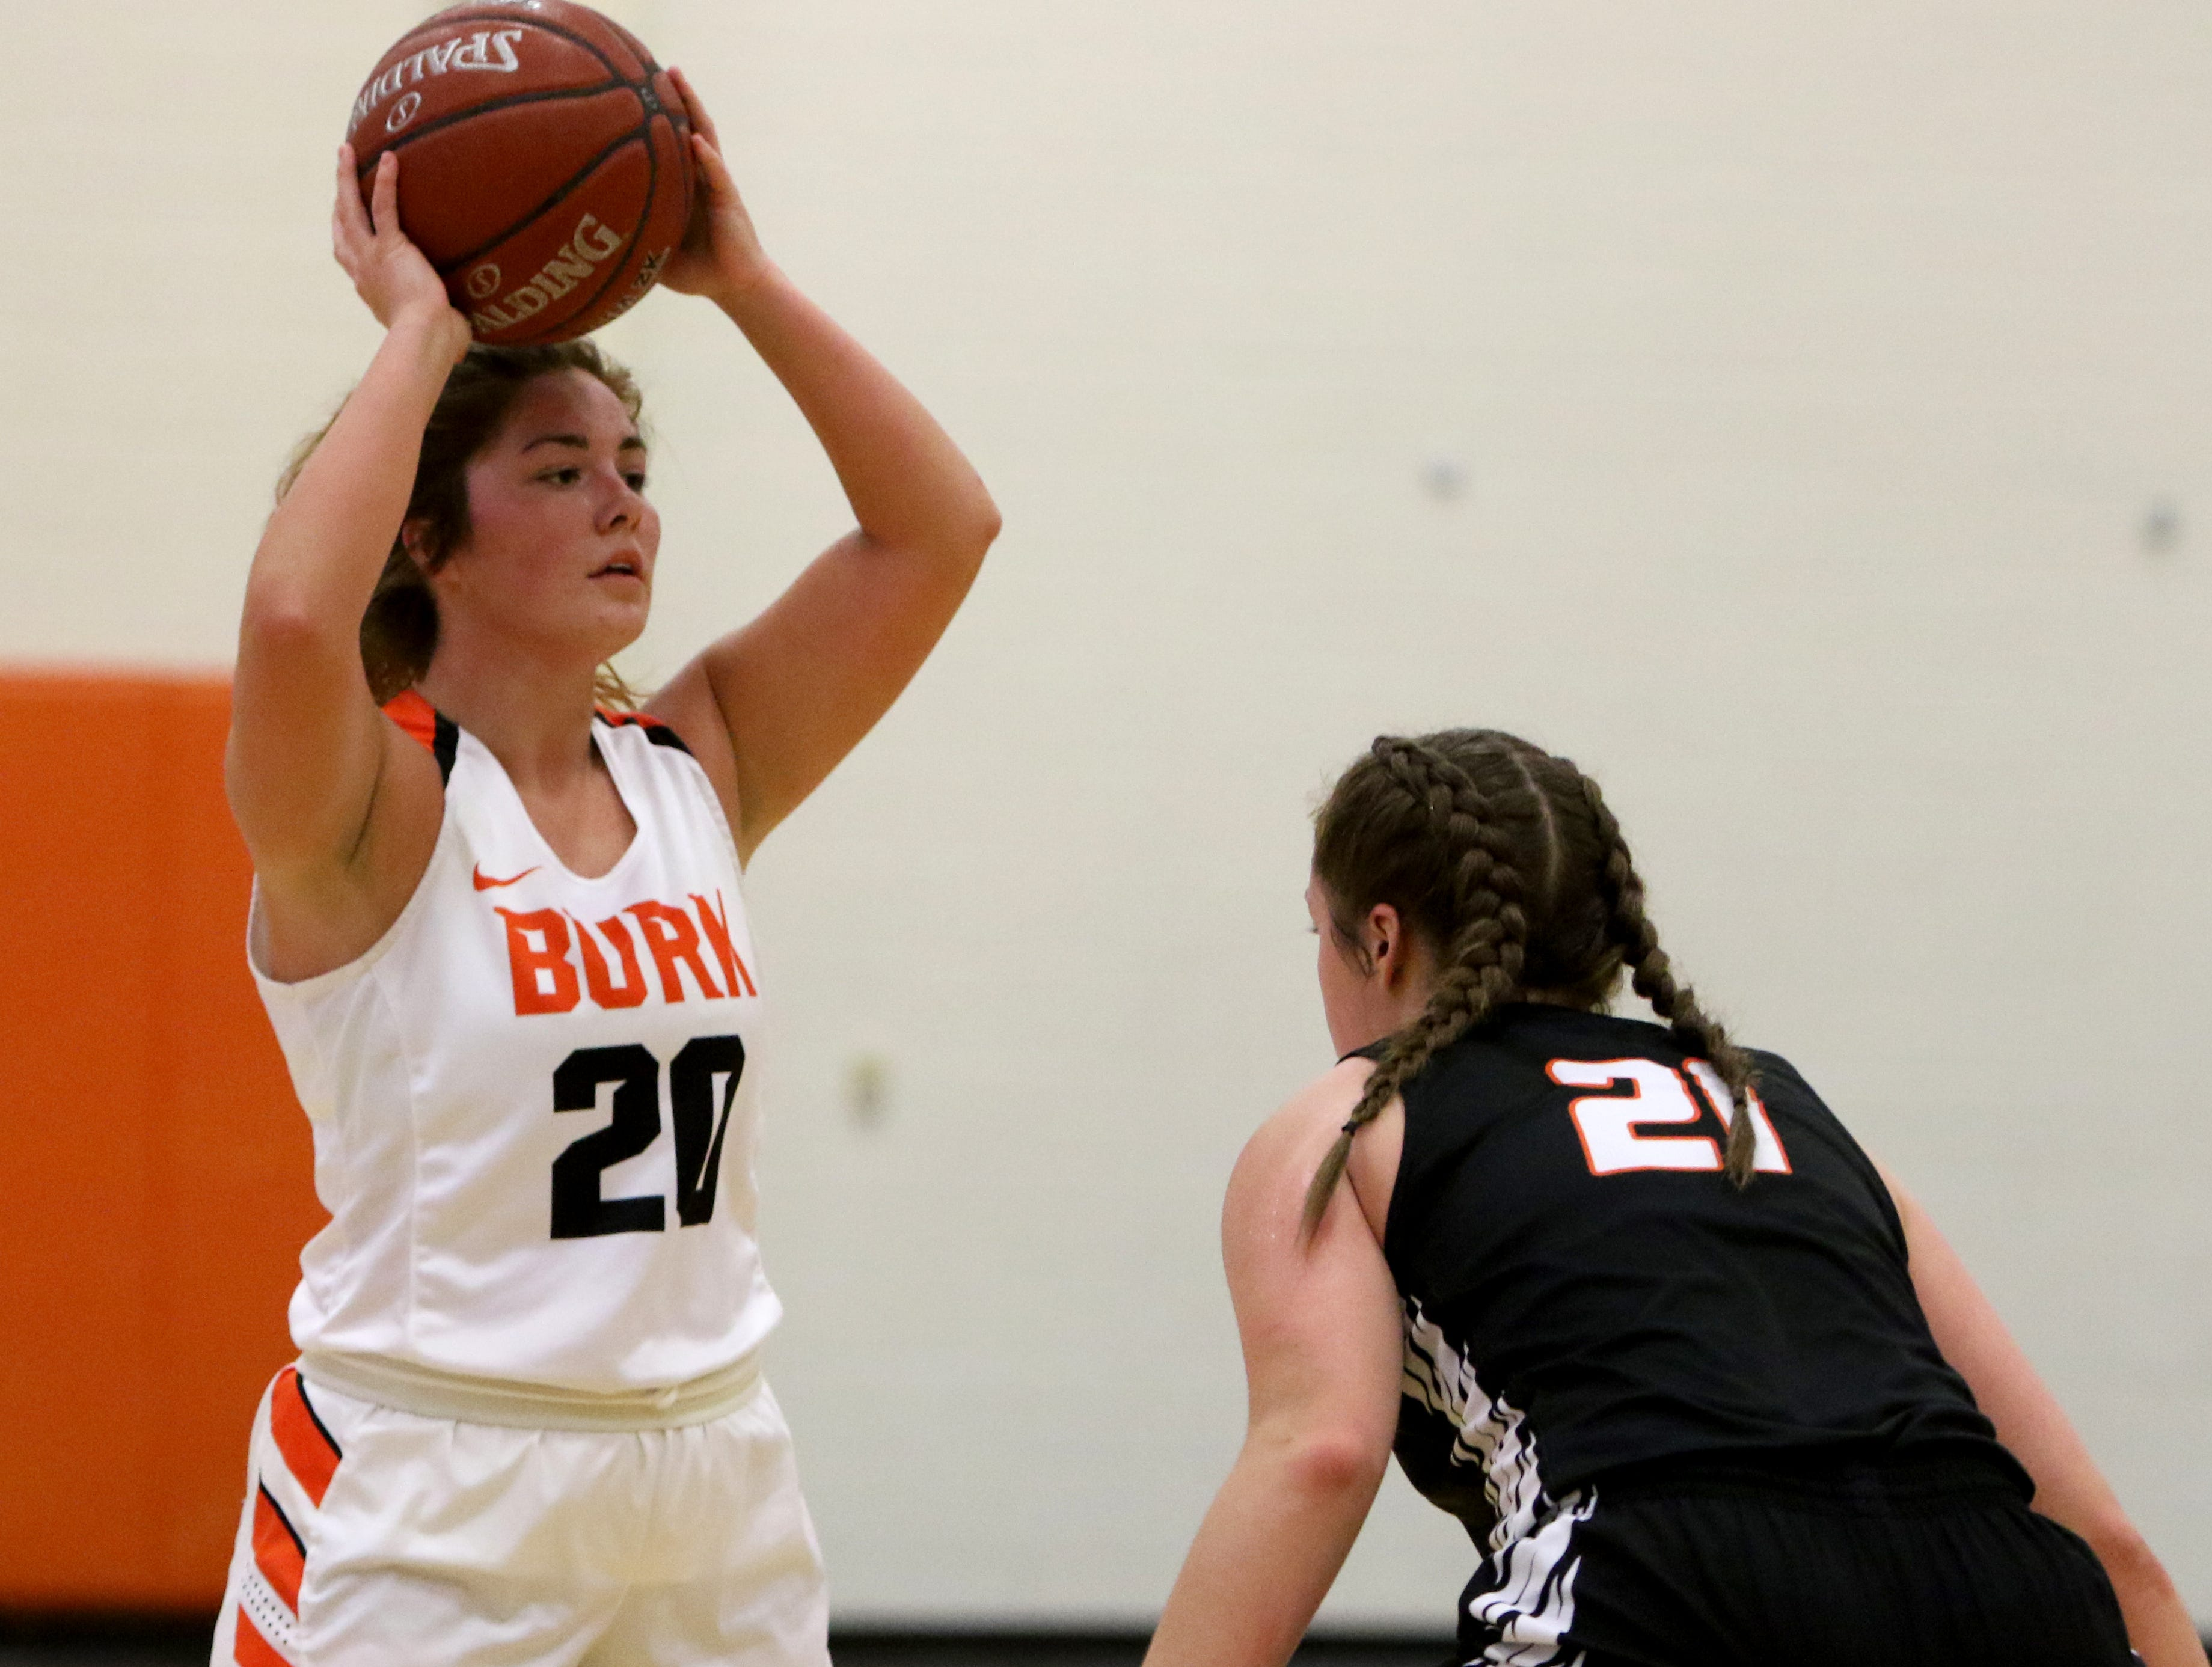 Burkburnett's Bailey Kosechata looks for an open teammate to pass to while guarded by Nocona's Averee Kleinhans Tuesday, Dec. 4, 2018, in Burkburnett.